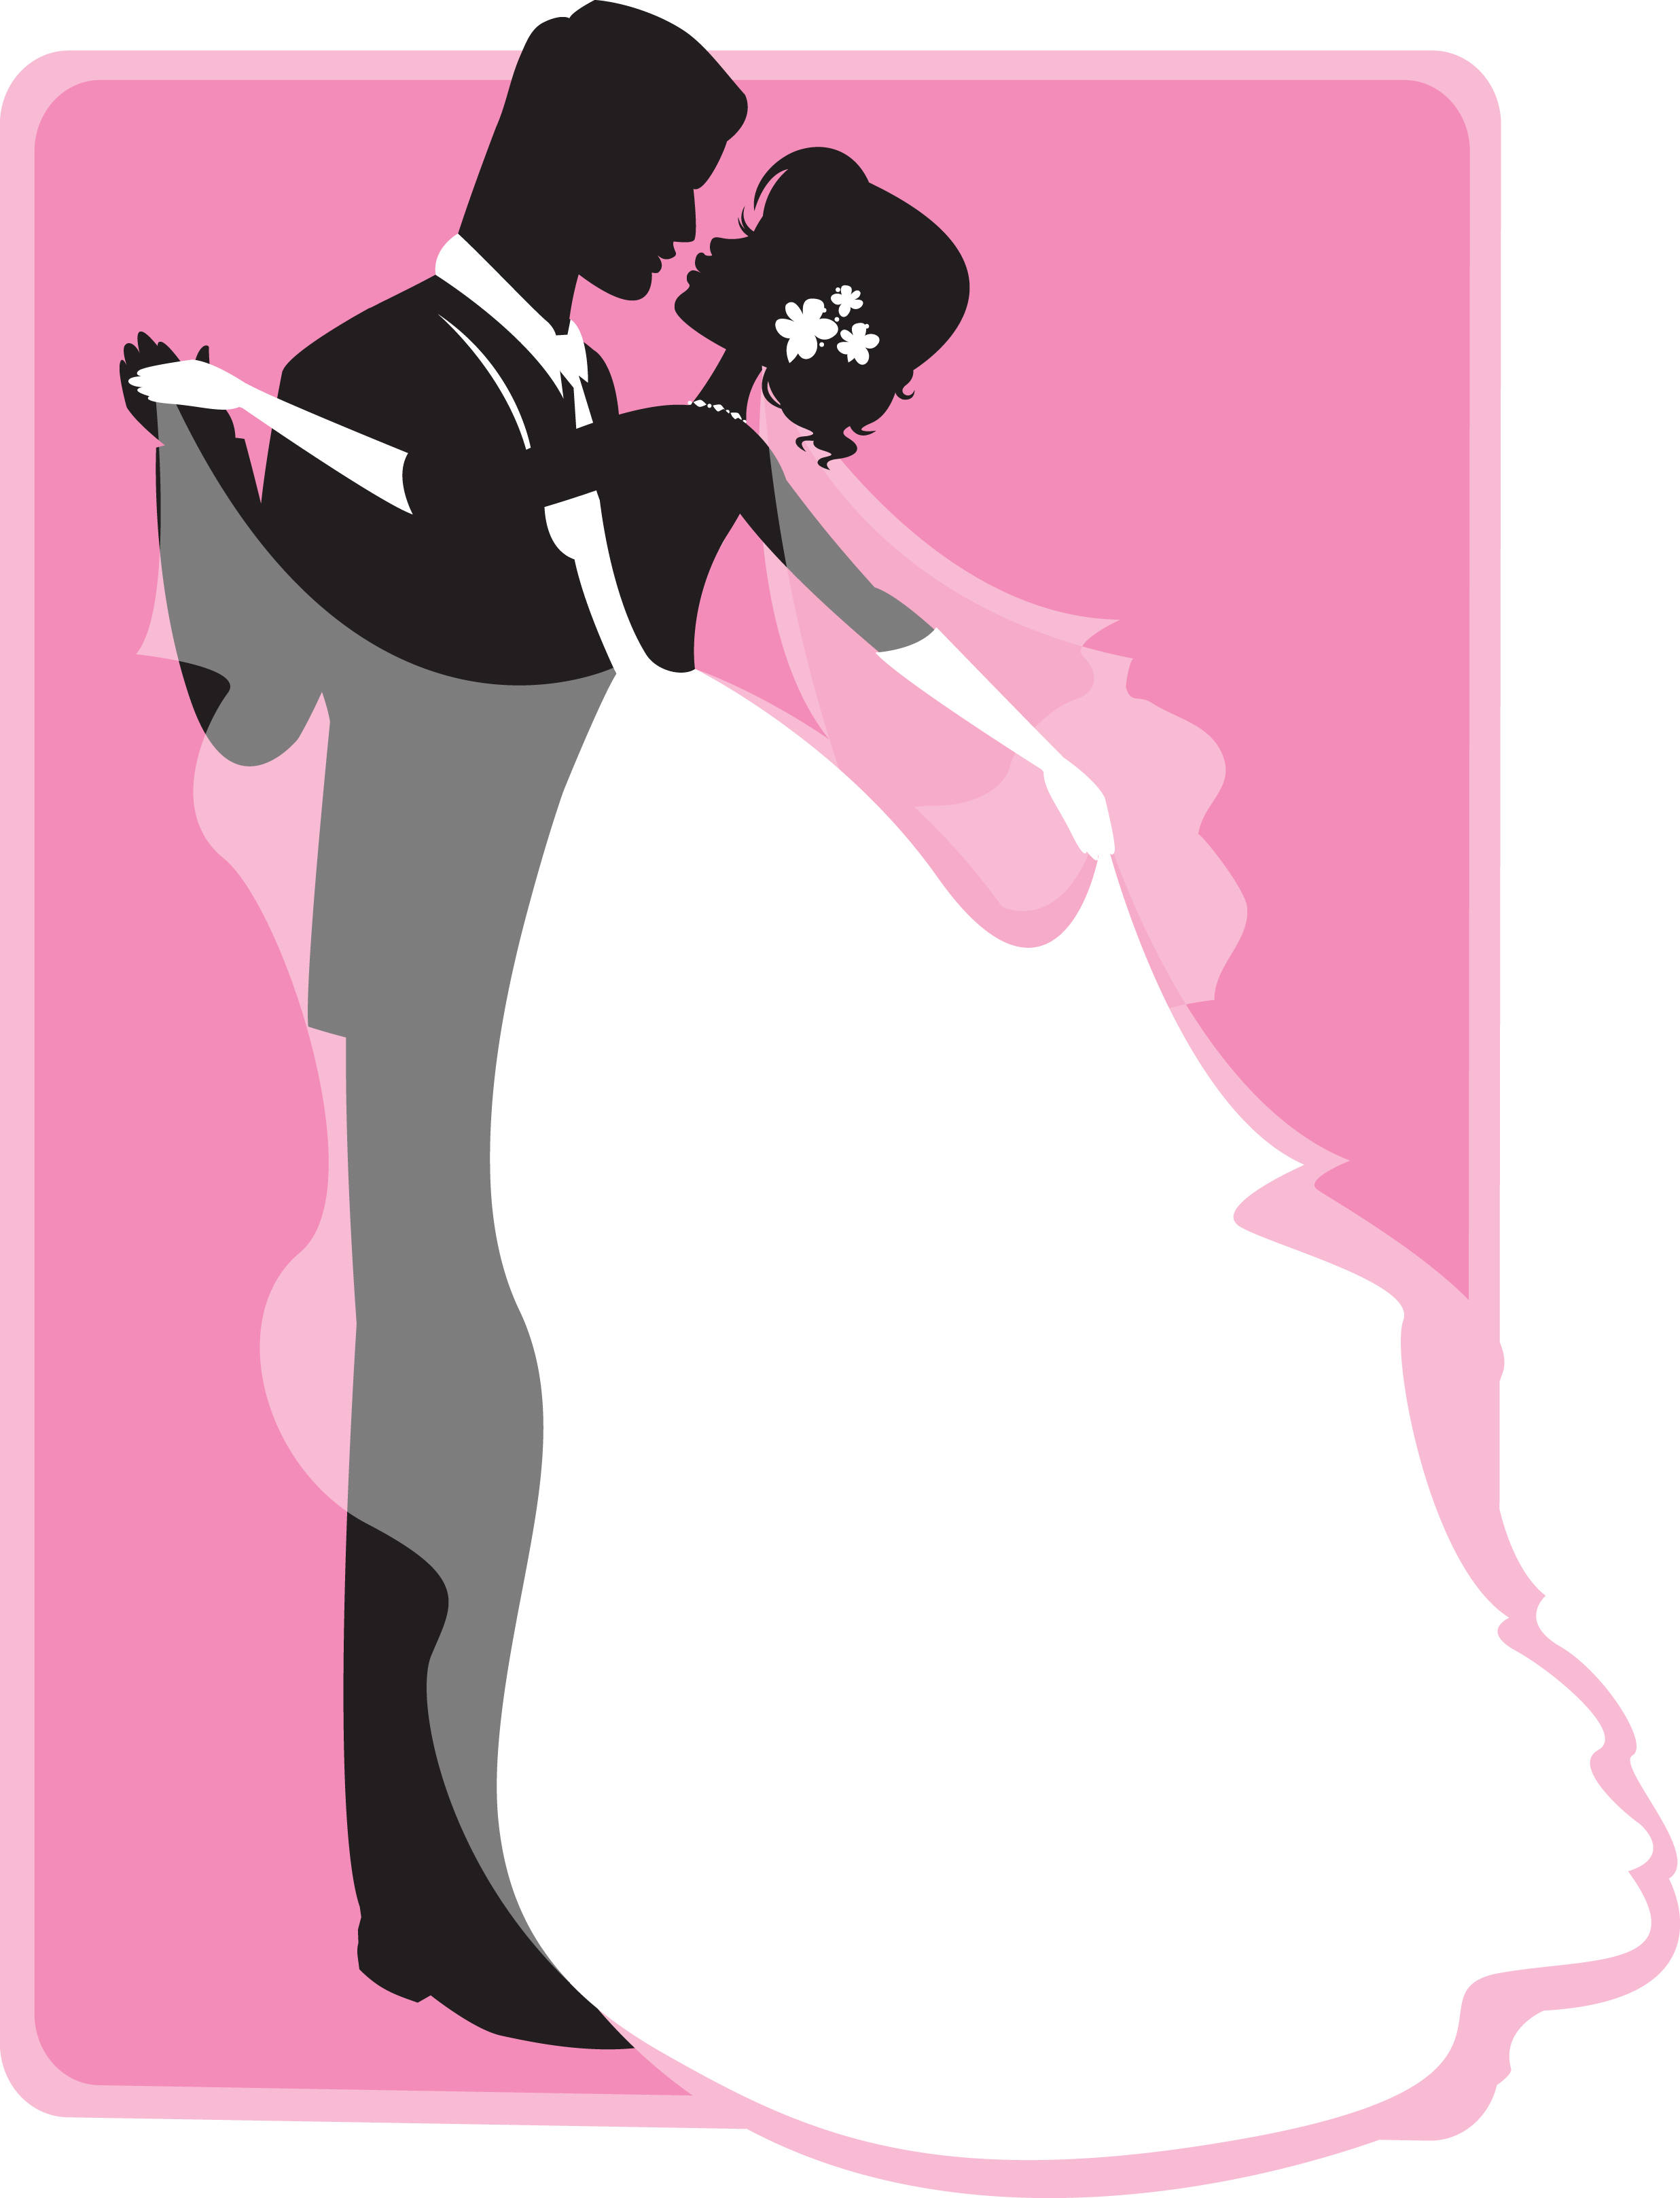 Wedding Dance Silhouette at GetDrawings.com | Free for personal use ...